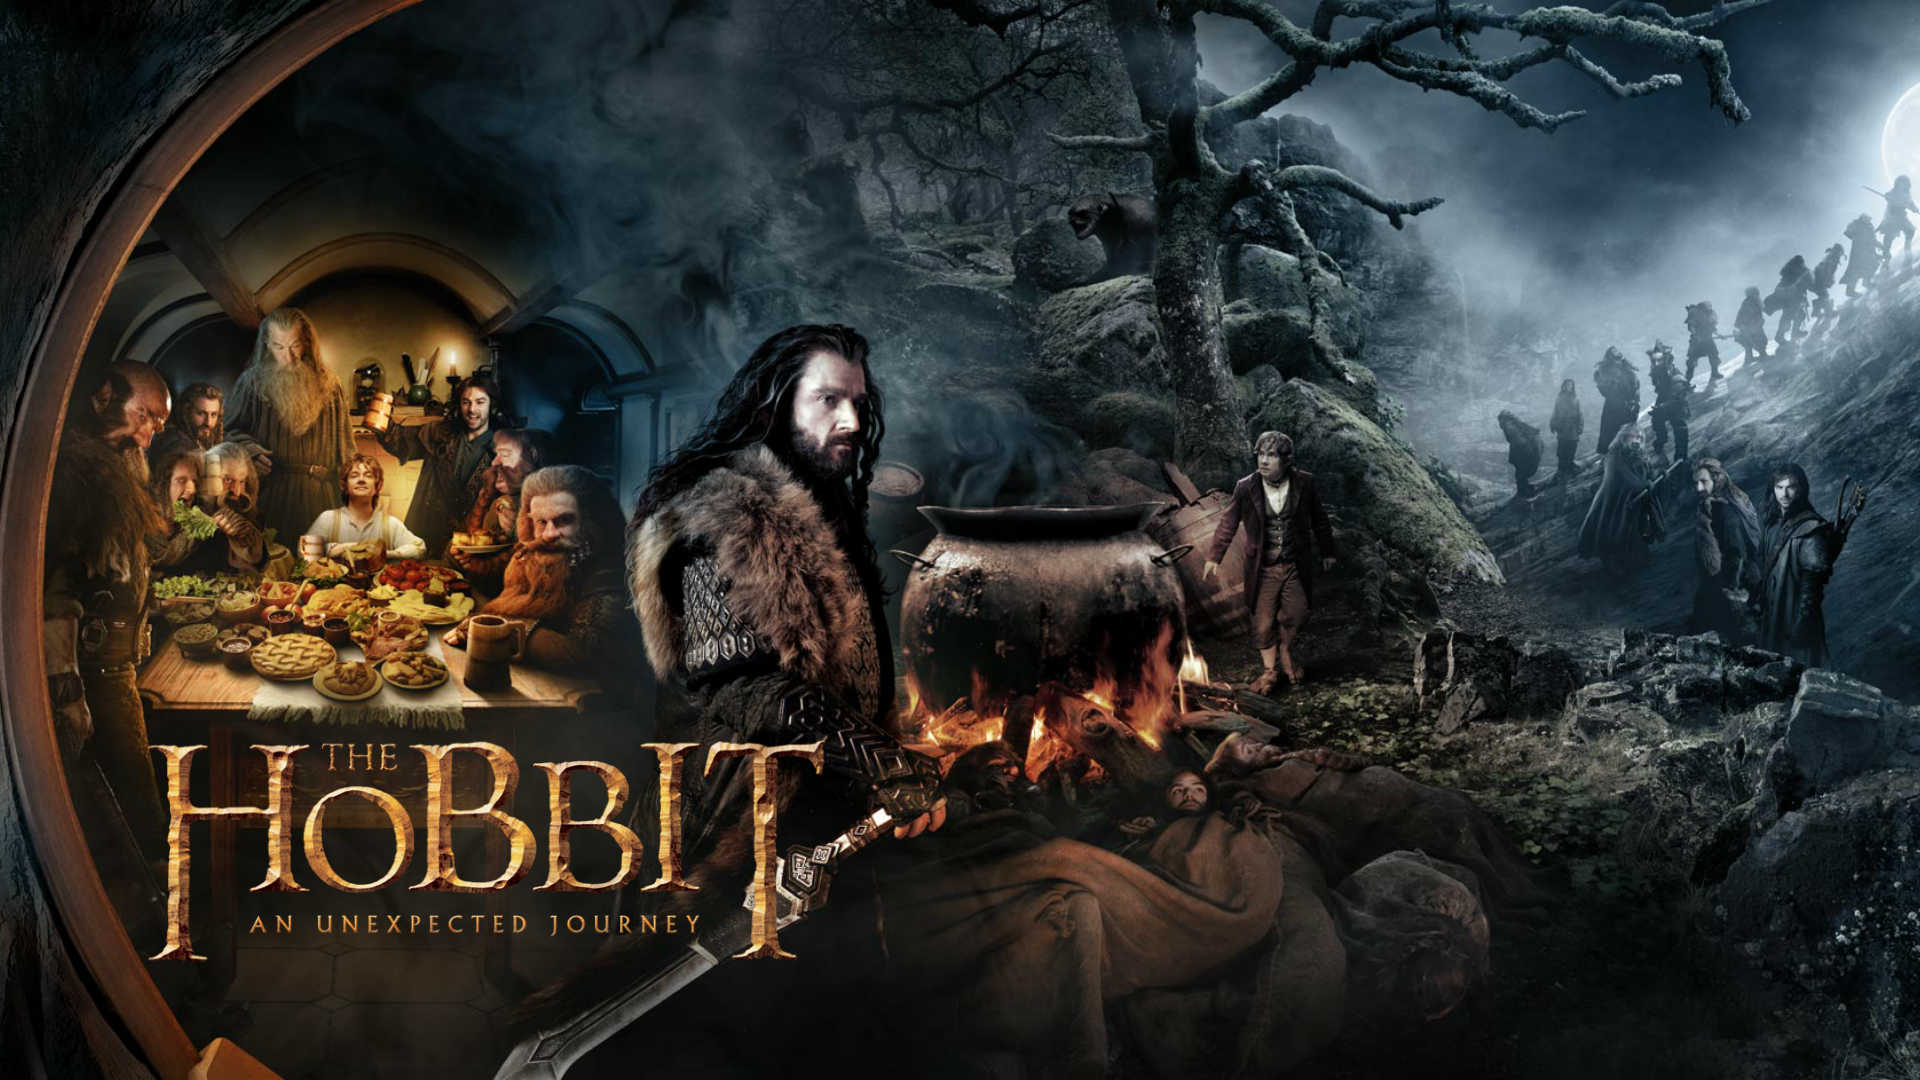 The Hobbit: An Unexpected Journey (2012) ျန္မာစာတန္းထုိး